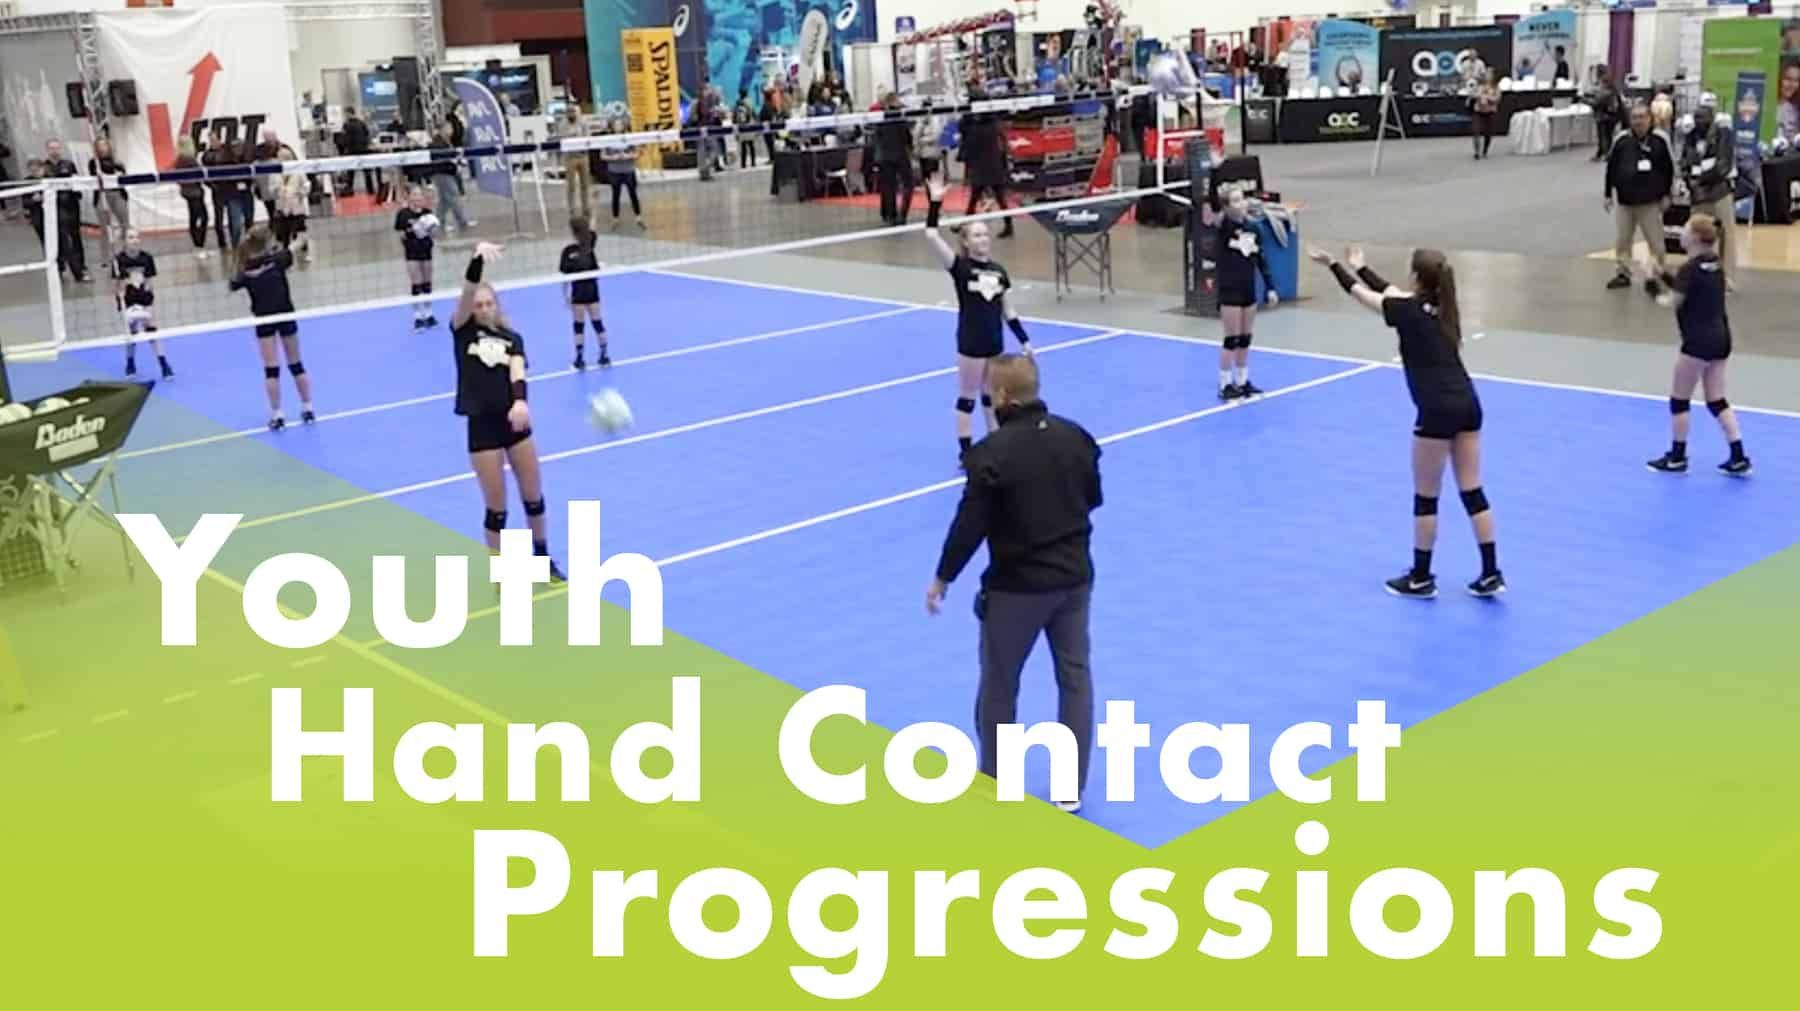 Good Hand Contact Progression The Art Of Coaching Volleyball Coaching Volleyball Volleyball Training Volleyball Camp